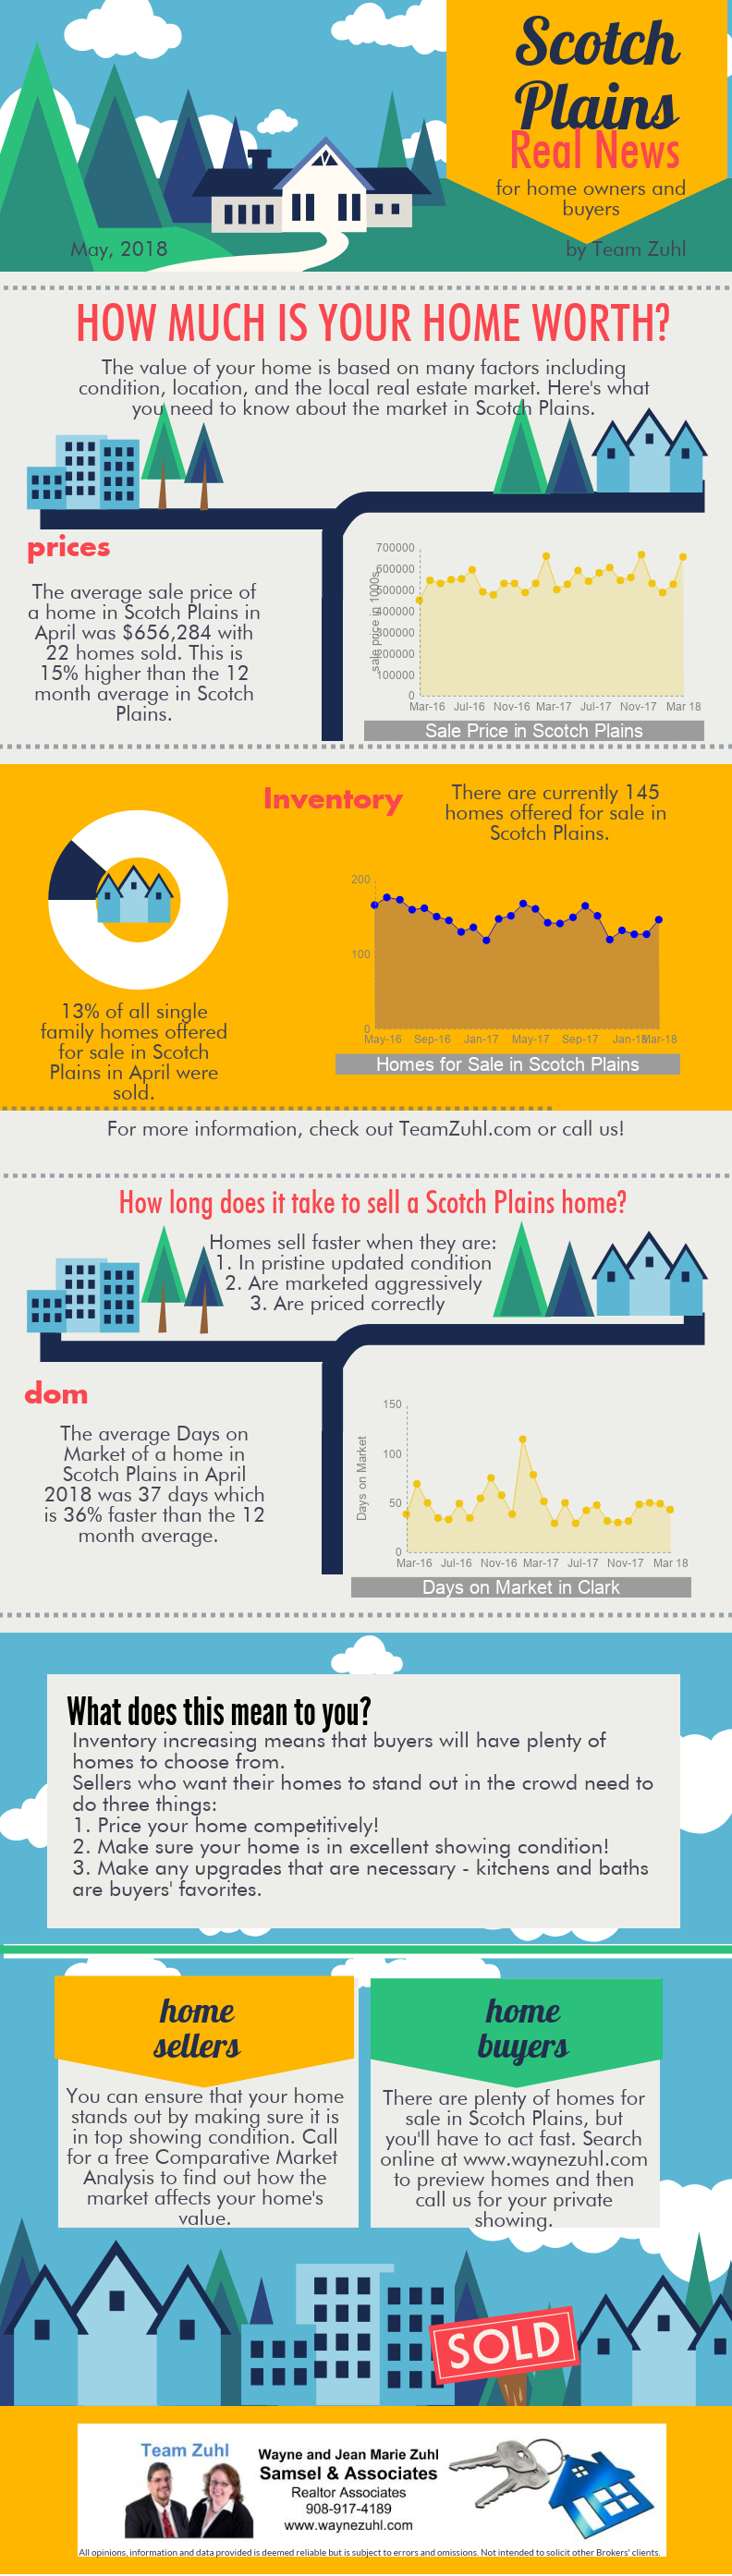 Scotch Plains real estate market report from Team Zuhl